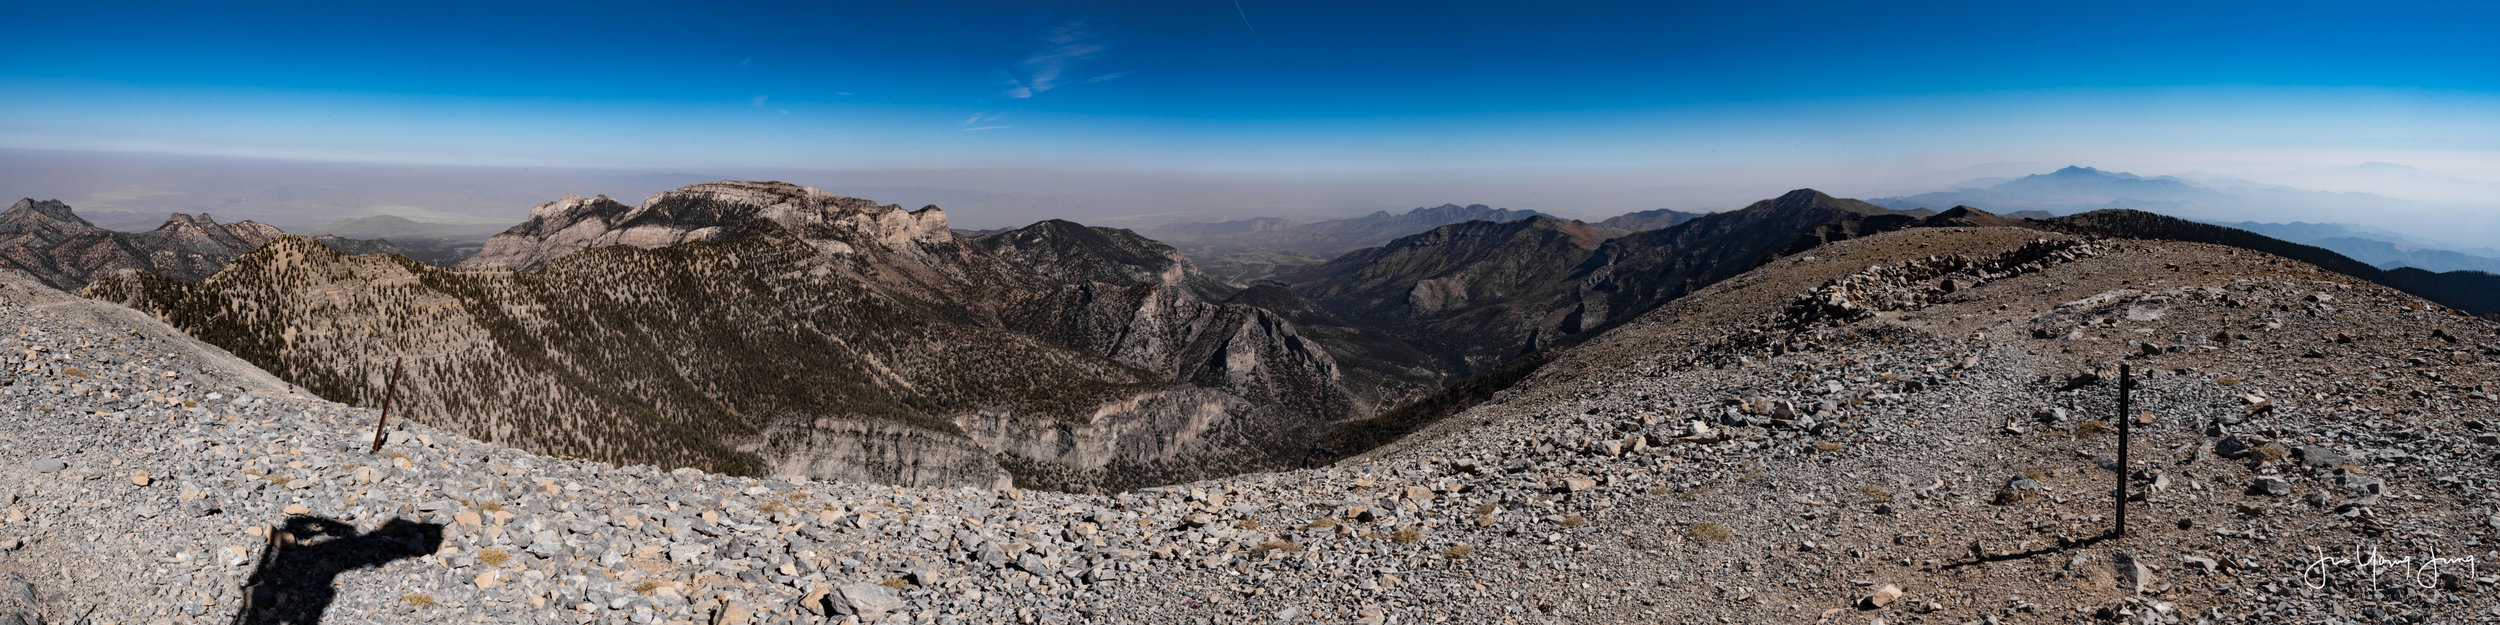 East View from Mt. Charleston Peak